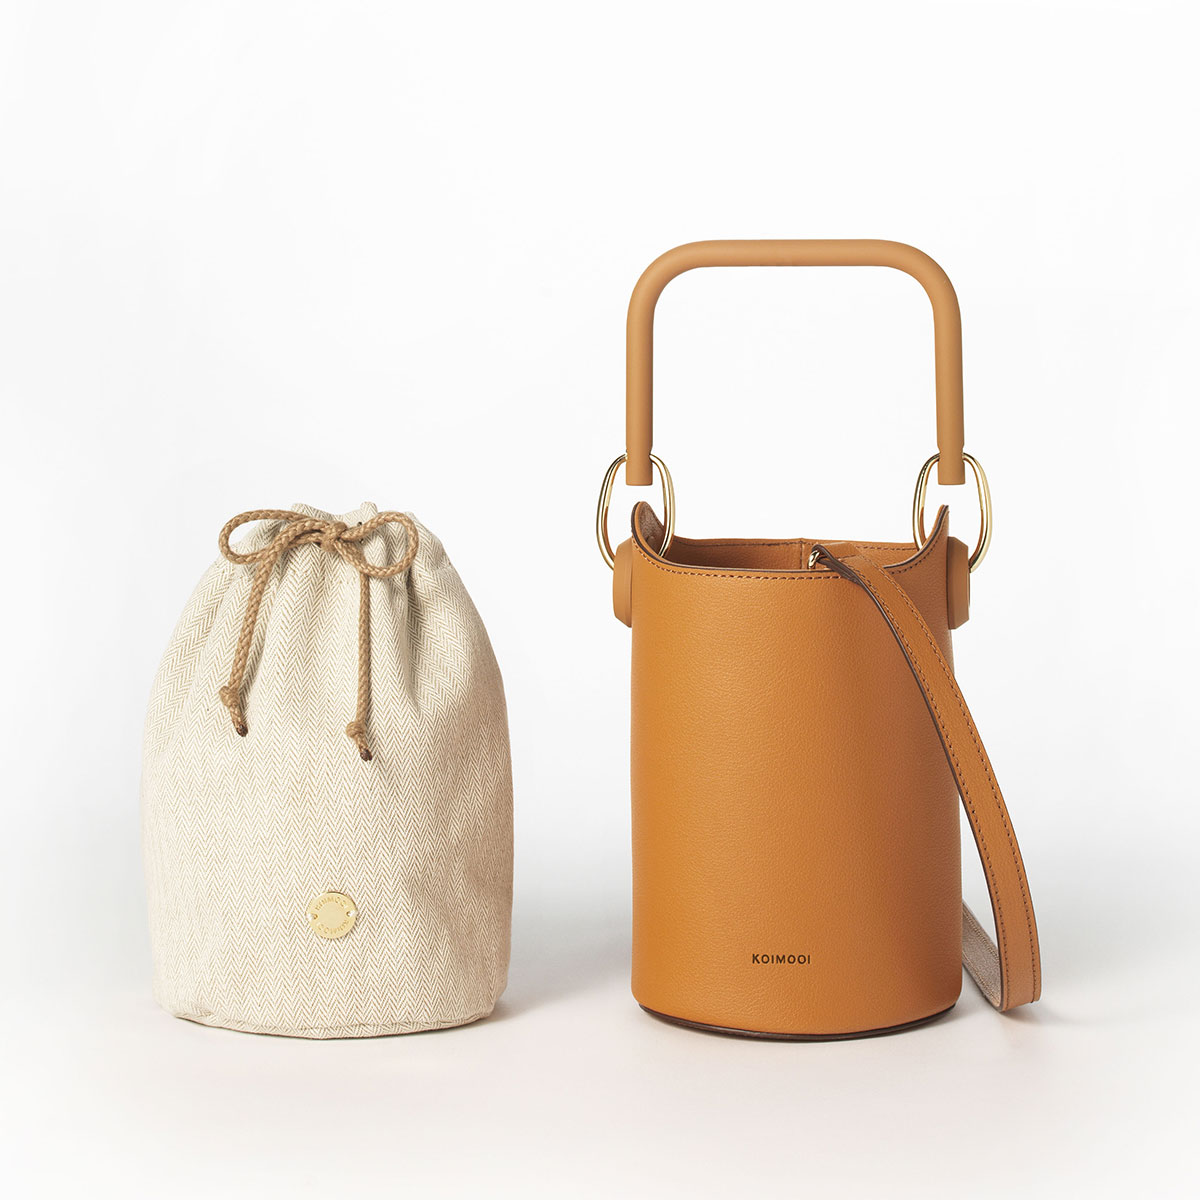 Once Bag (Camel)